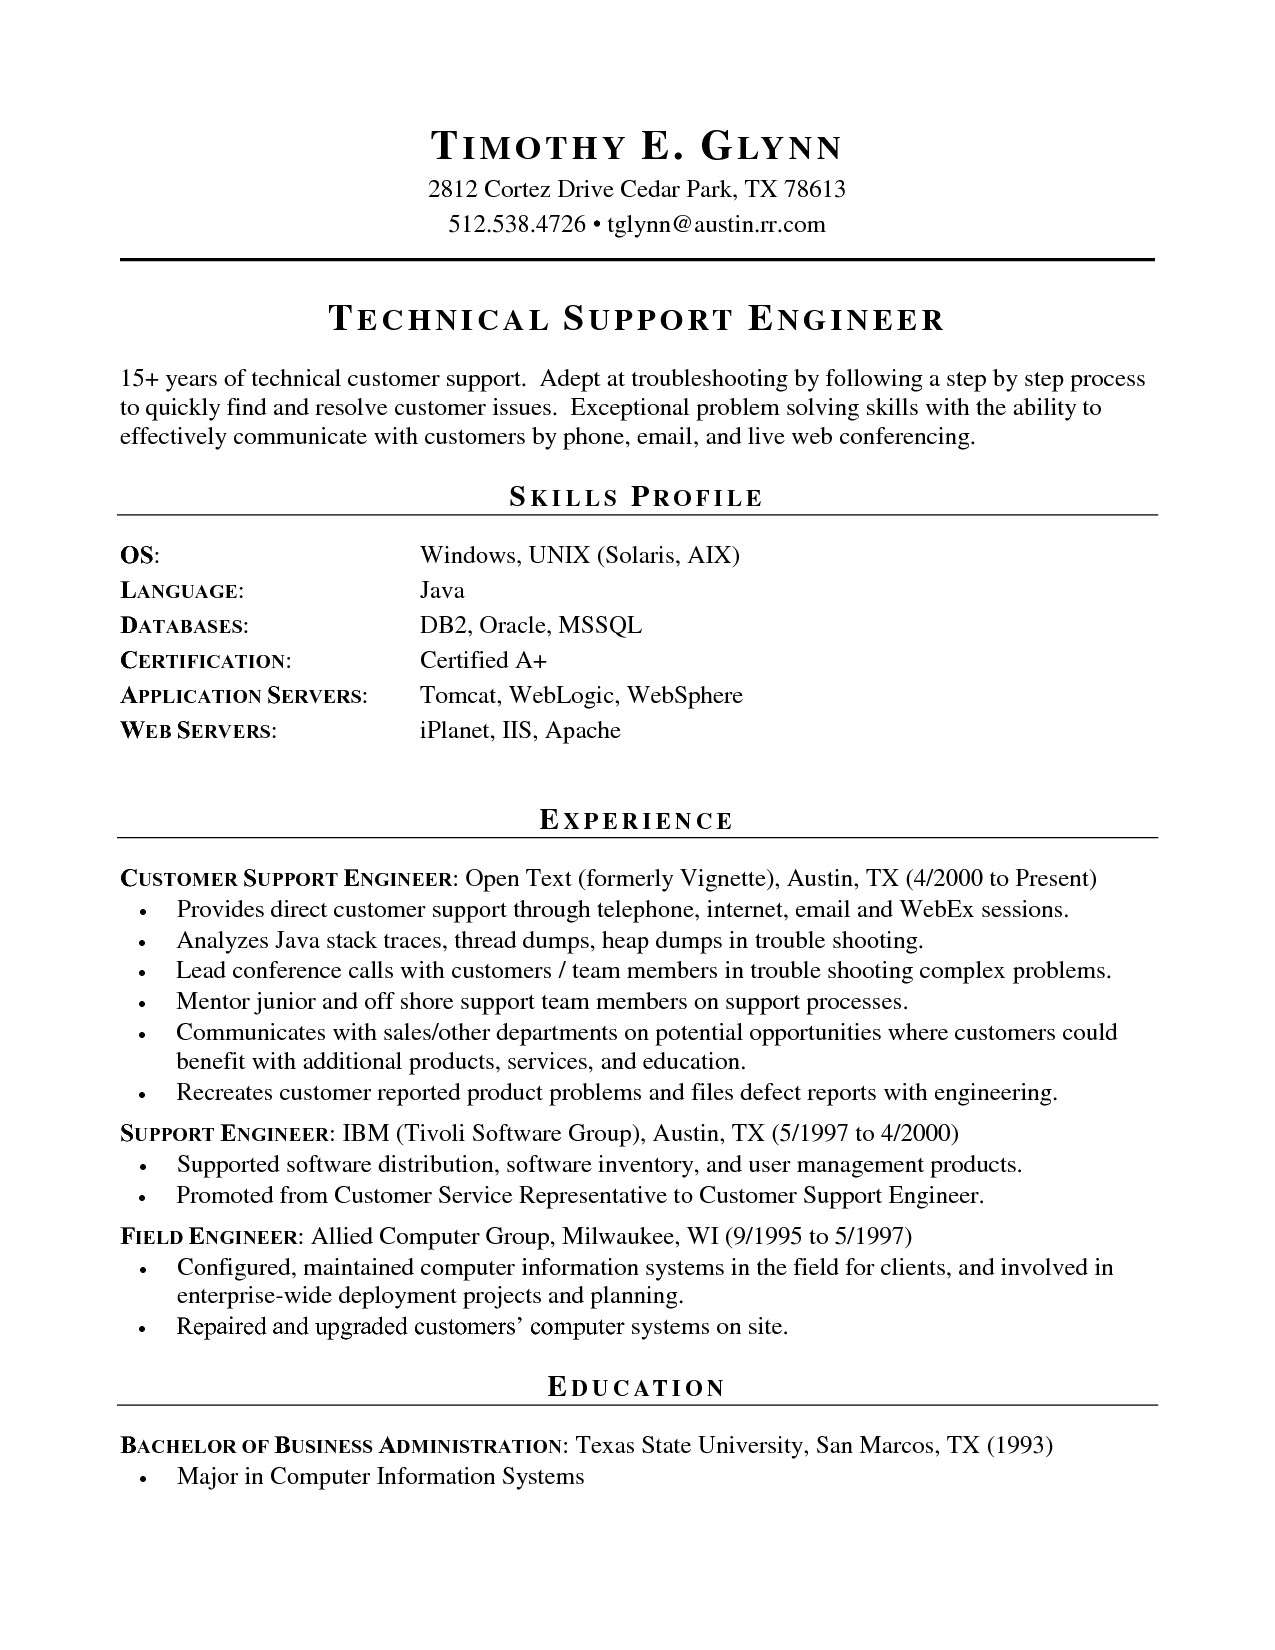 resume technical skills